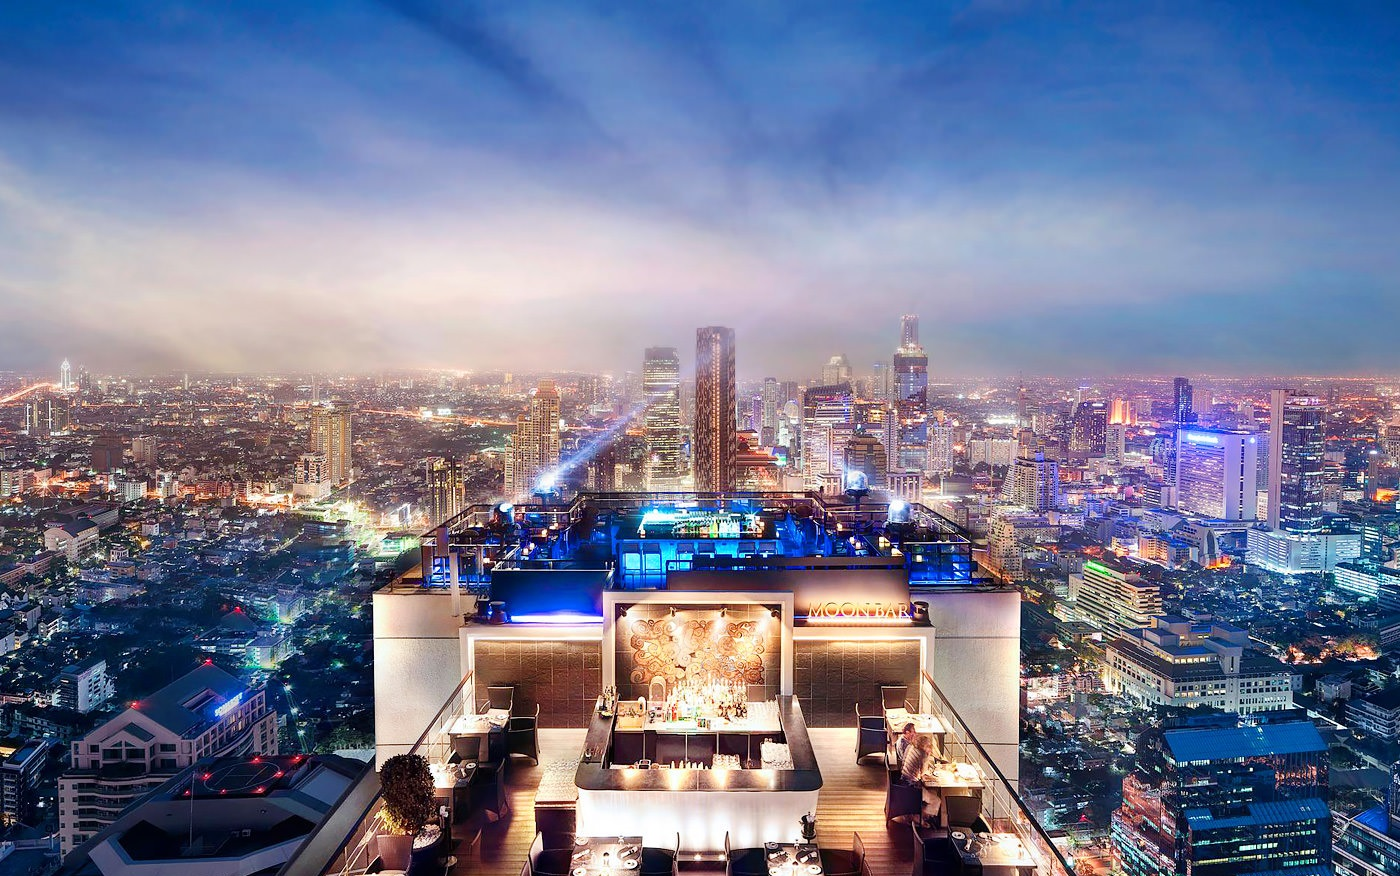 11. Vertigo Grill & Moon Bar at Banyan Tree || Bangkok, Thailand